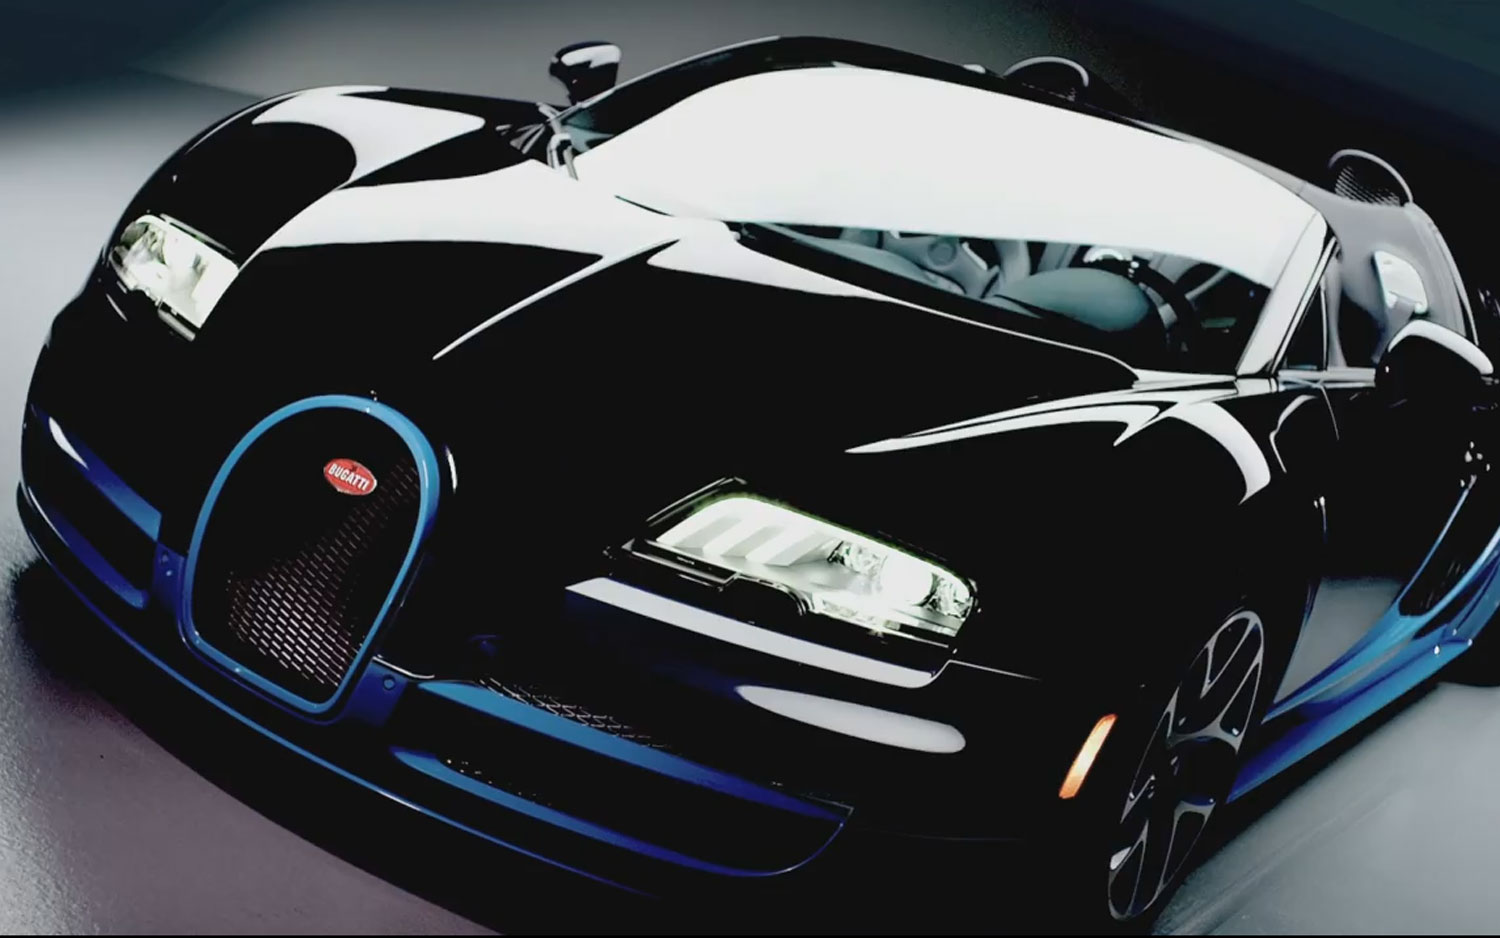 Bugatti Veyron Grand Sport Vitesse Front Three Quarter View Photo Wallpapers For Ios